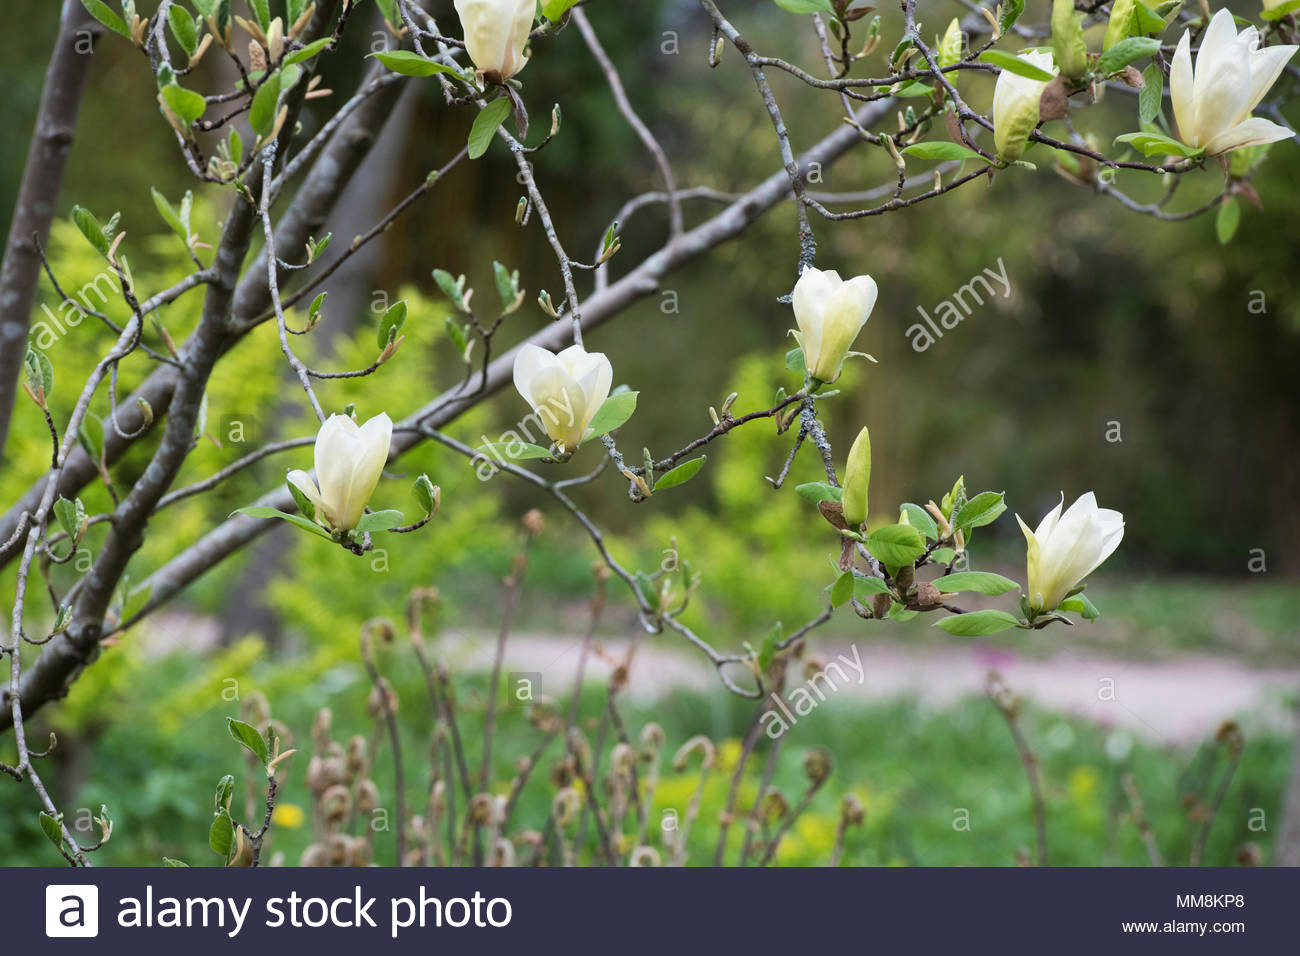 Magnolia Tree Spring Buds Stock Photos & Magnolia Tree Spring Buds ...